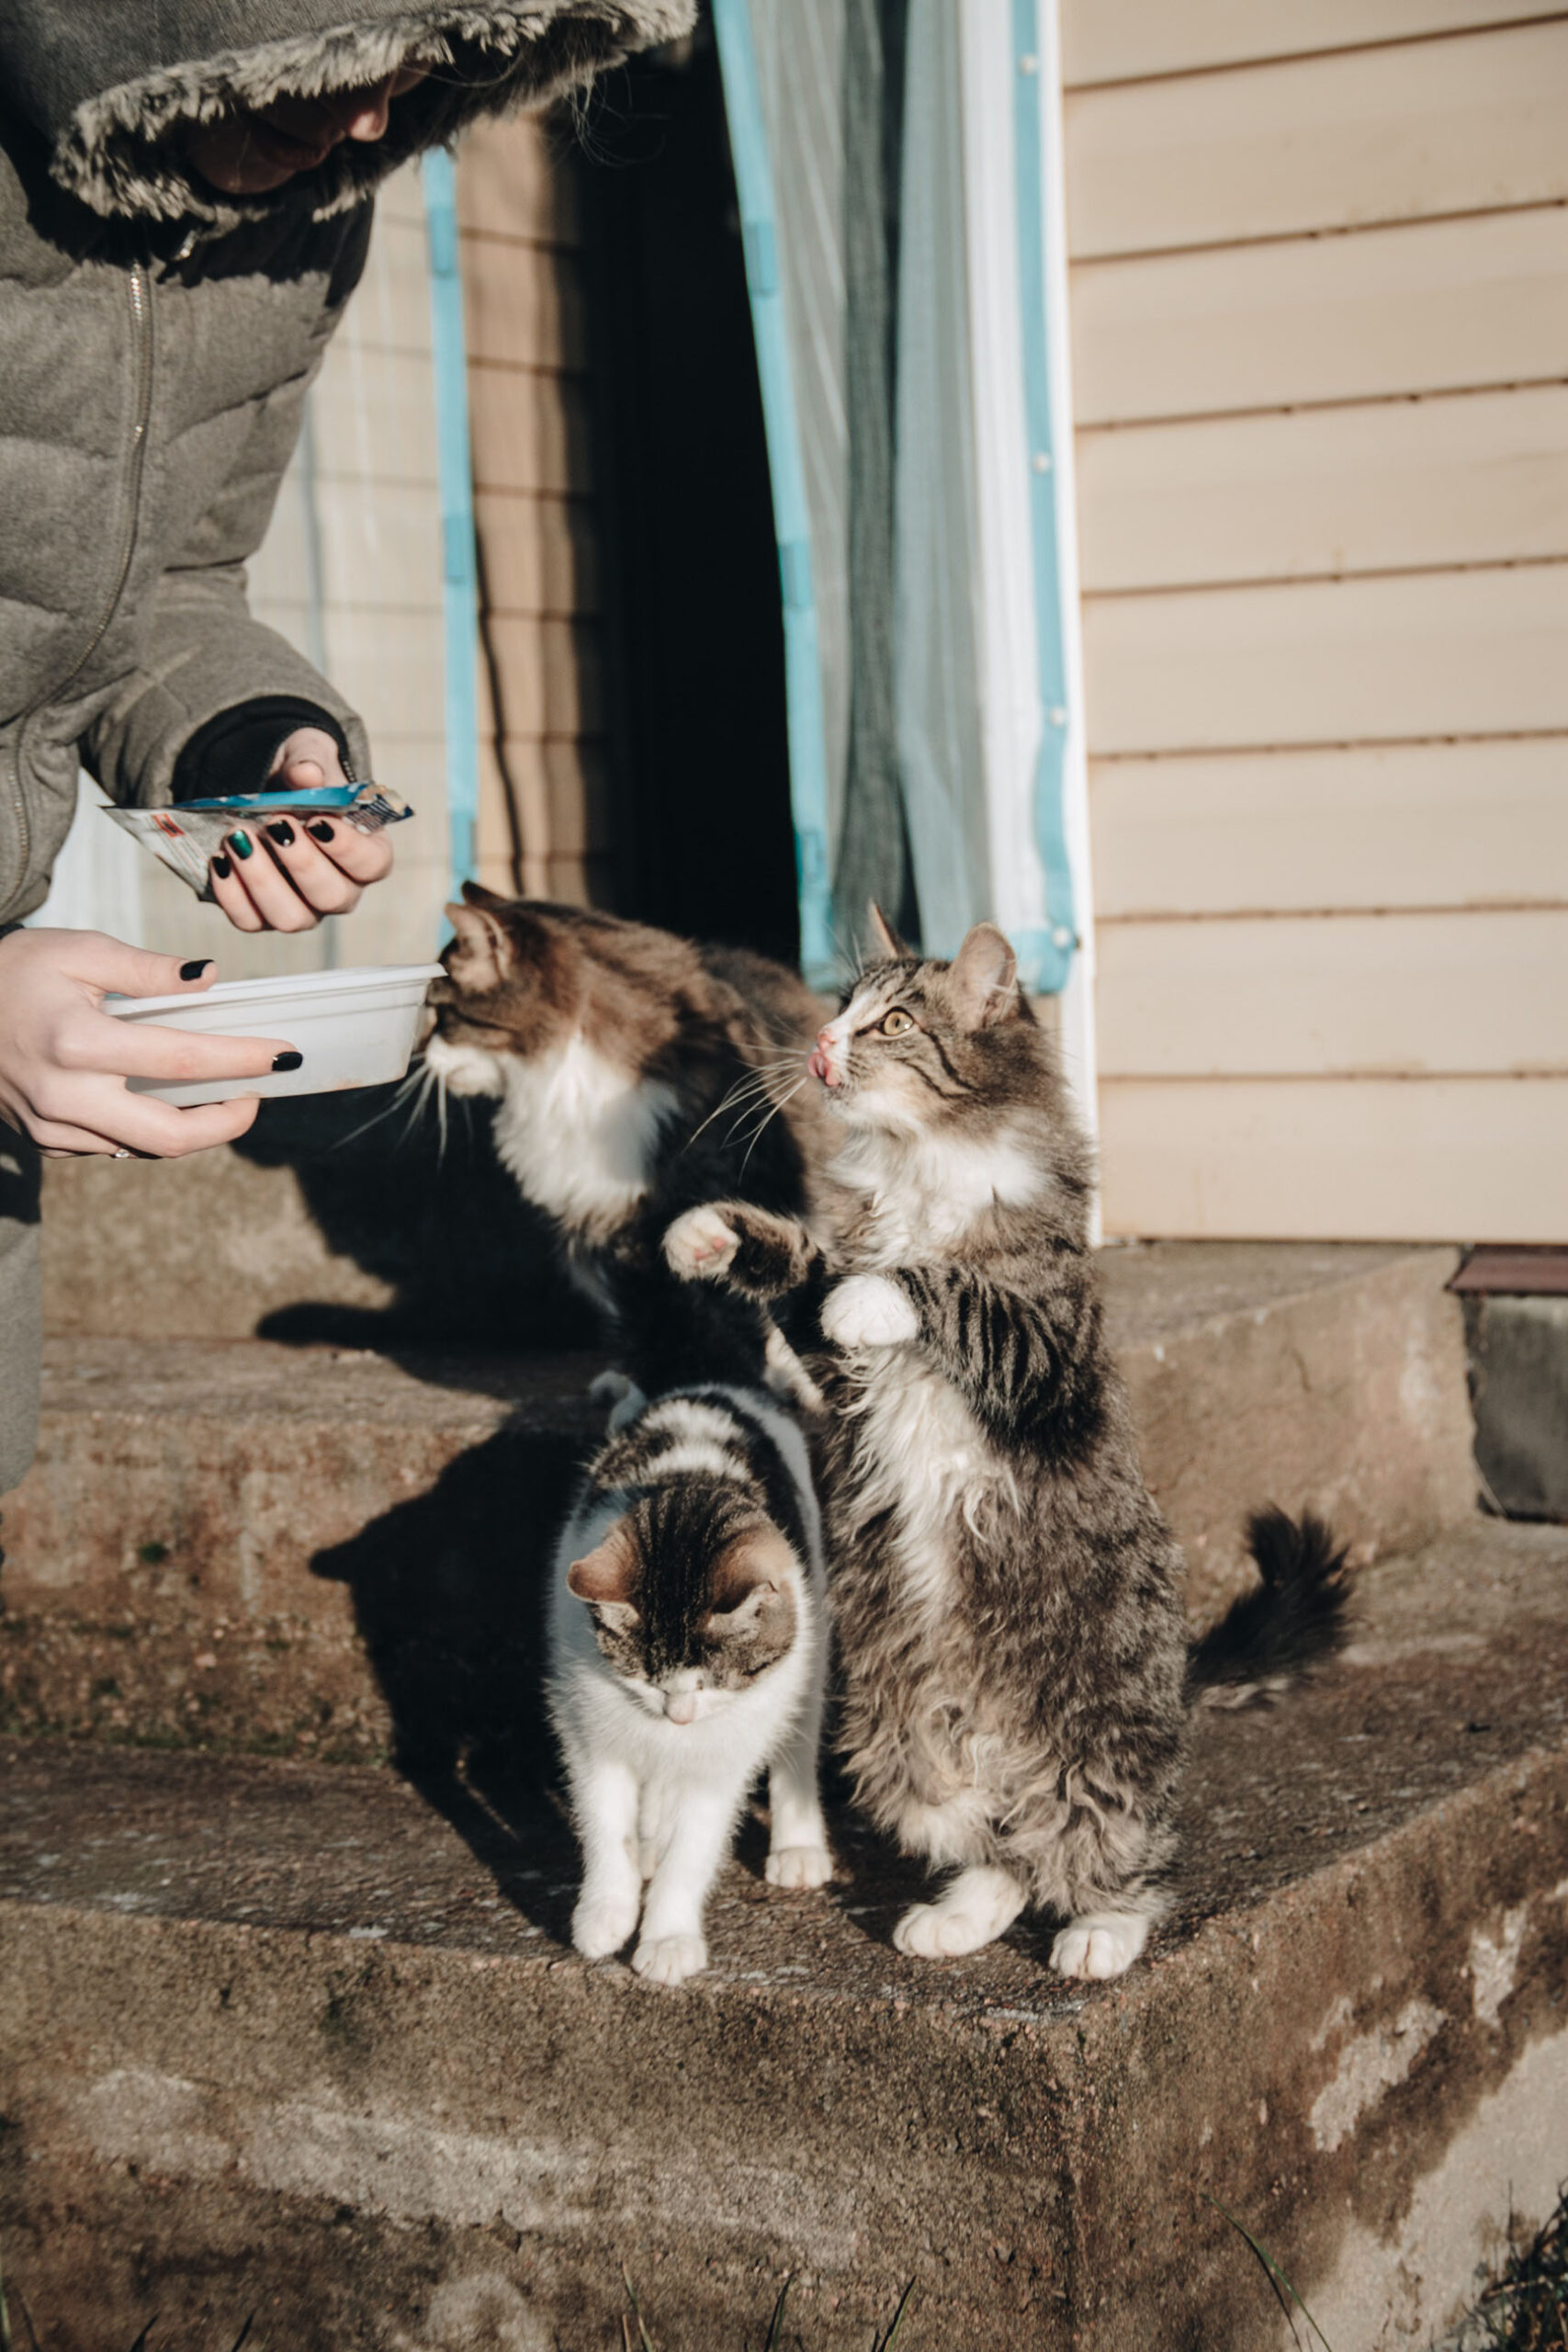 BECOME A FRIEND TO COMMUNITY CATS